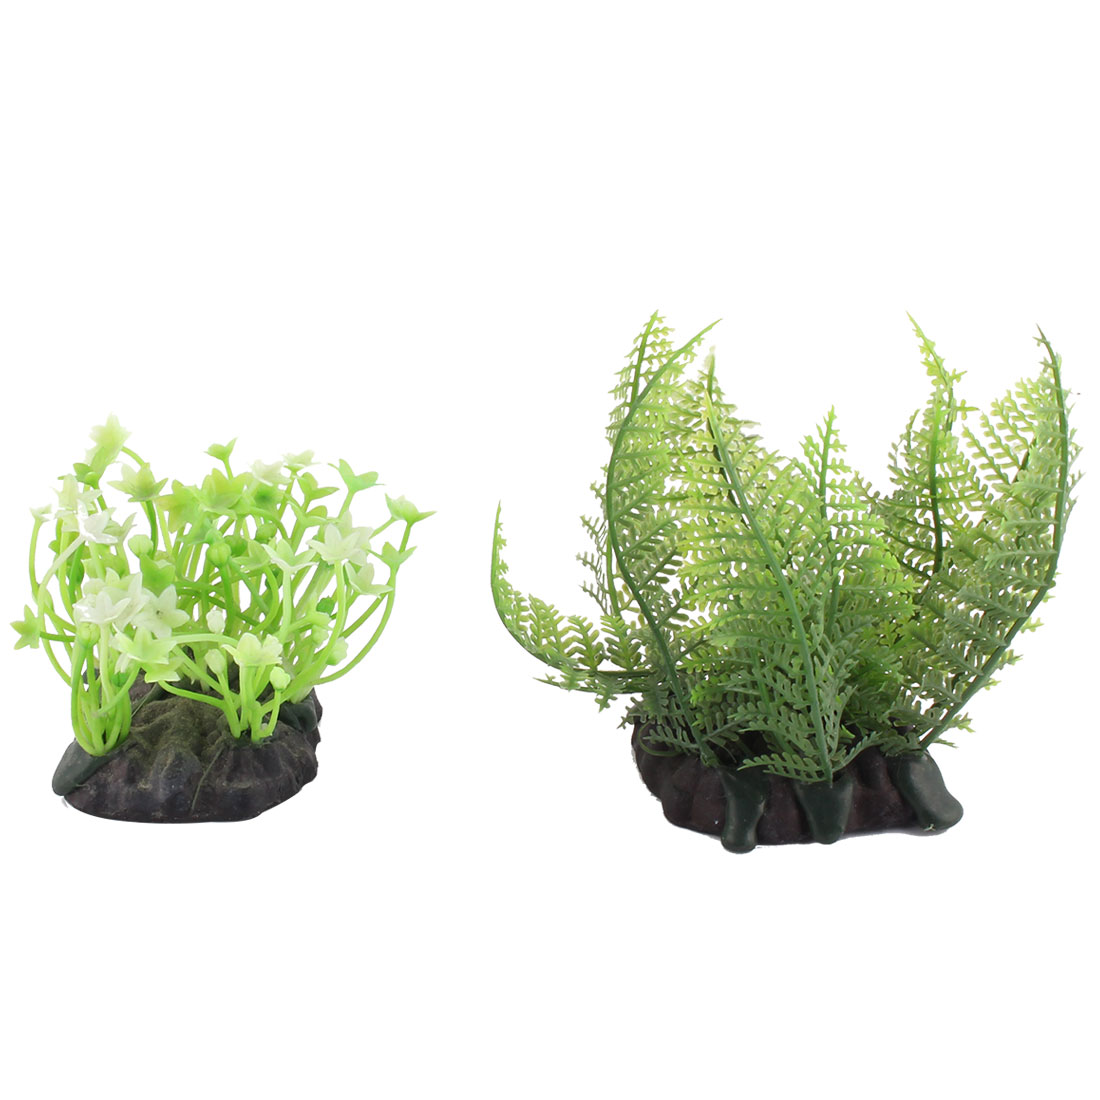 Fish Globe Aquarium Plastic Vivid Water Plant Grass Decoration Ornament 2 in 1